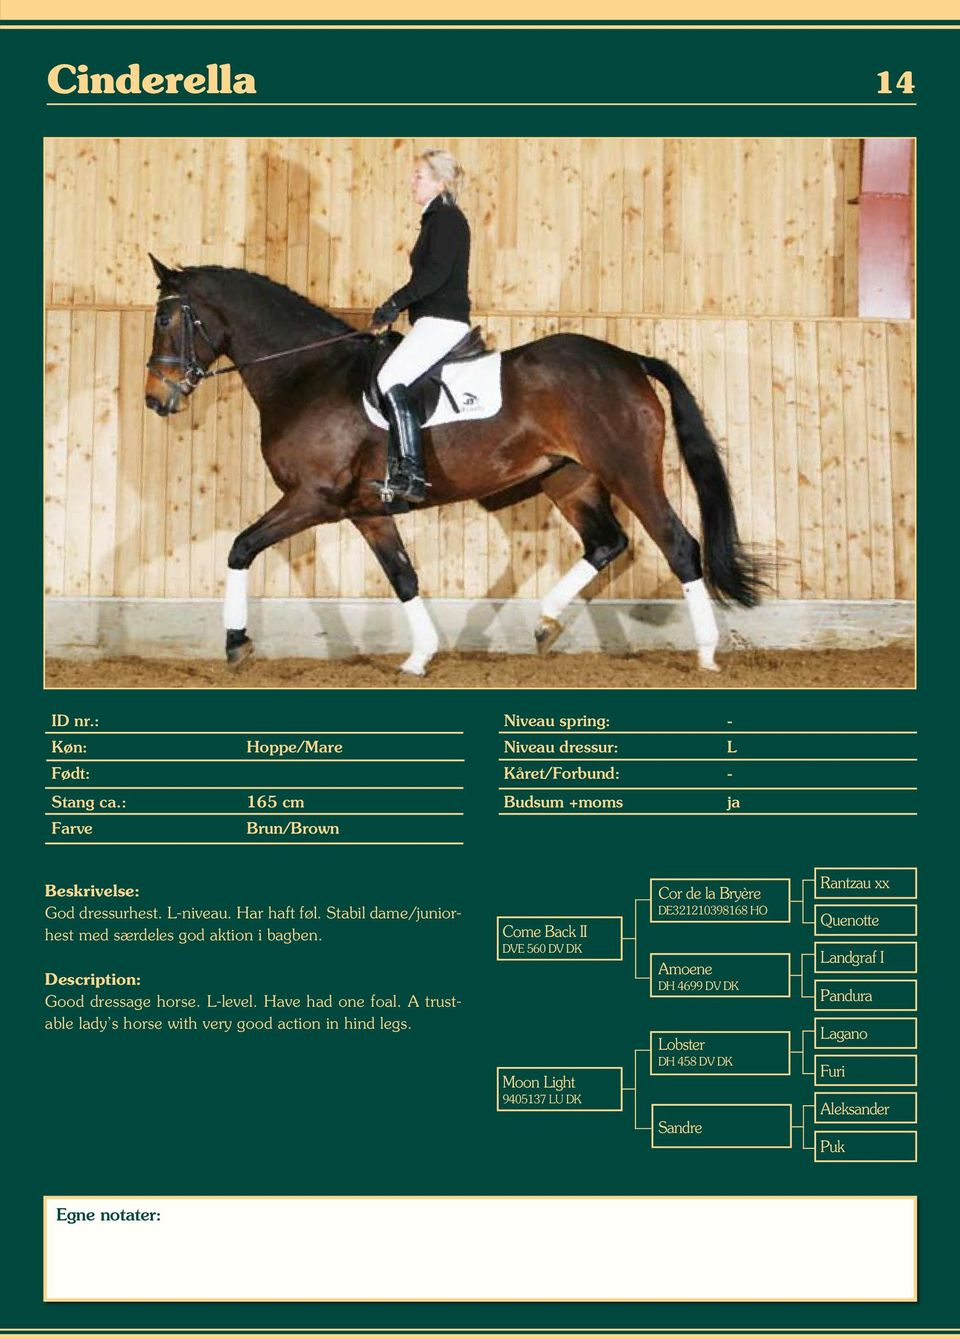 Good dressage horse. L-level. Have had one foal. A trustable lady s horse with very good action in hind legs.